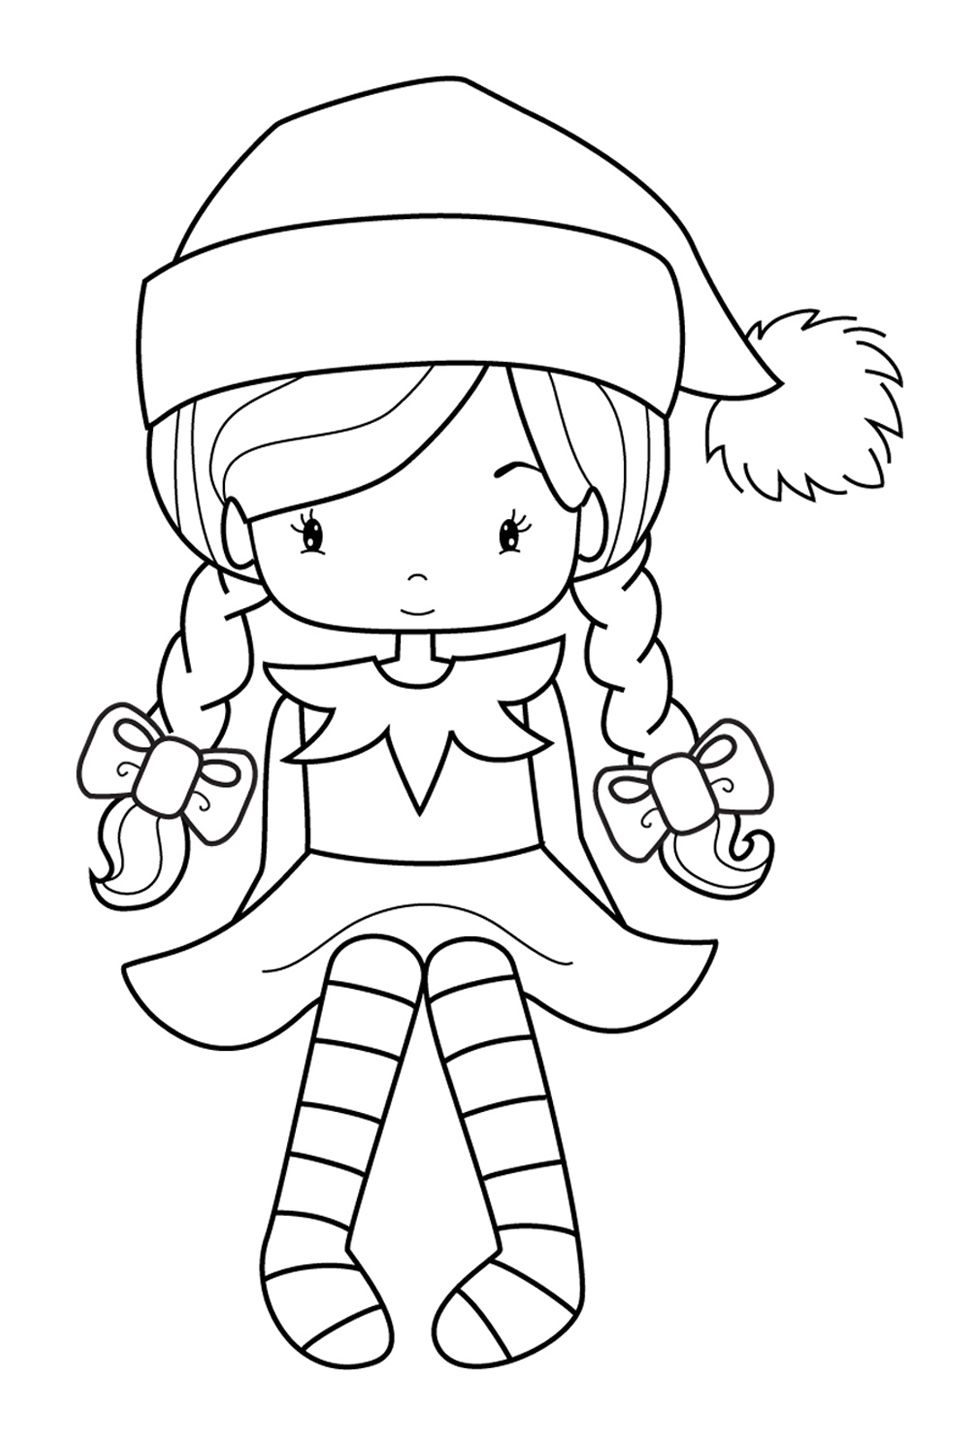 coloring pages girl elf - photo#6